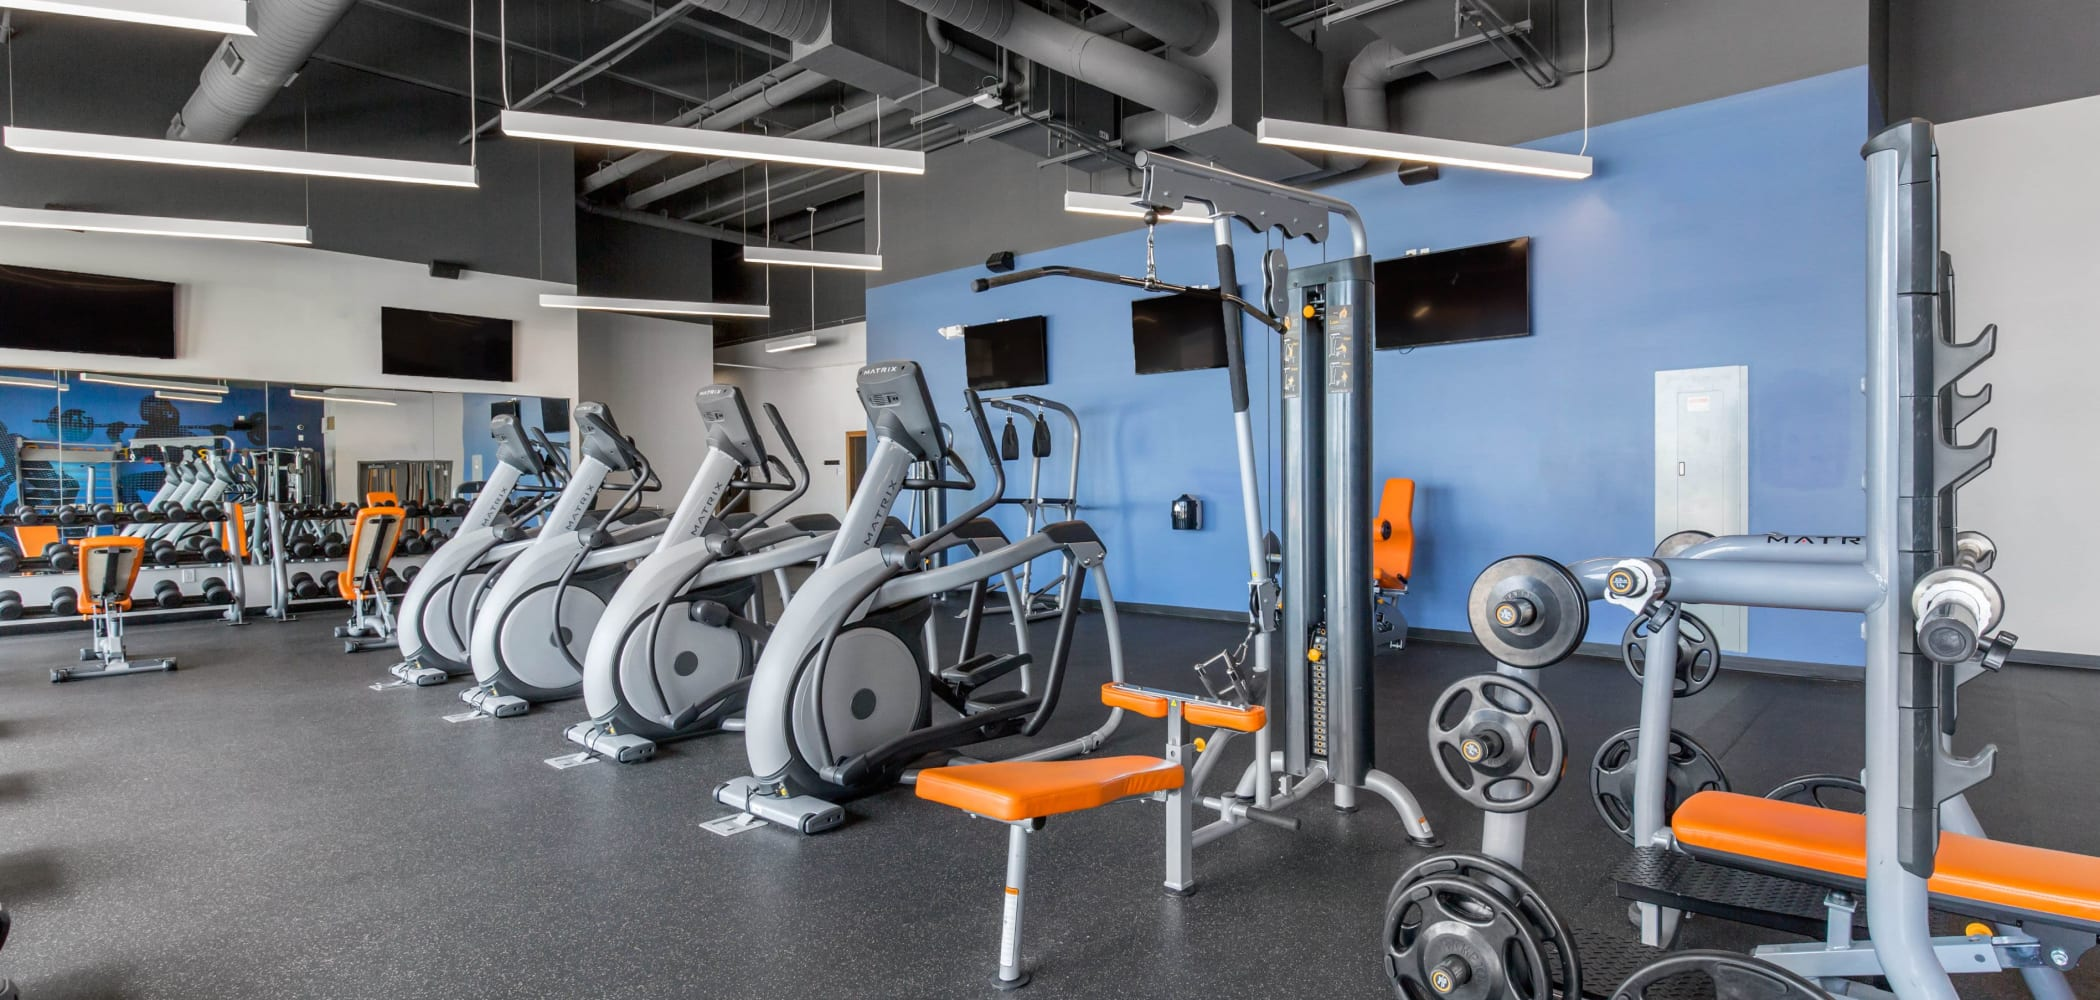 Fully equipped fitness center at West Quad in Champaign, Illinois